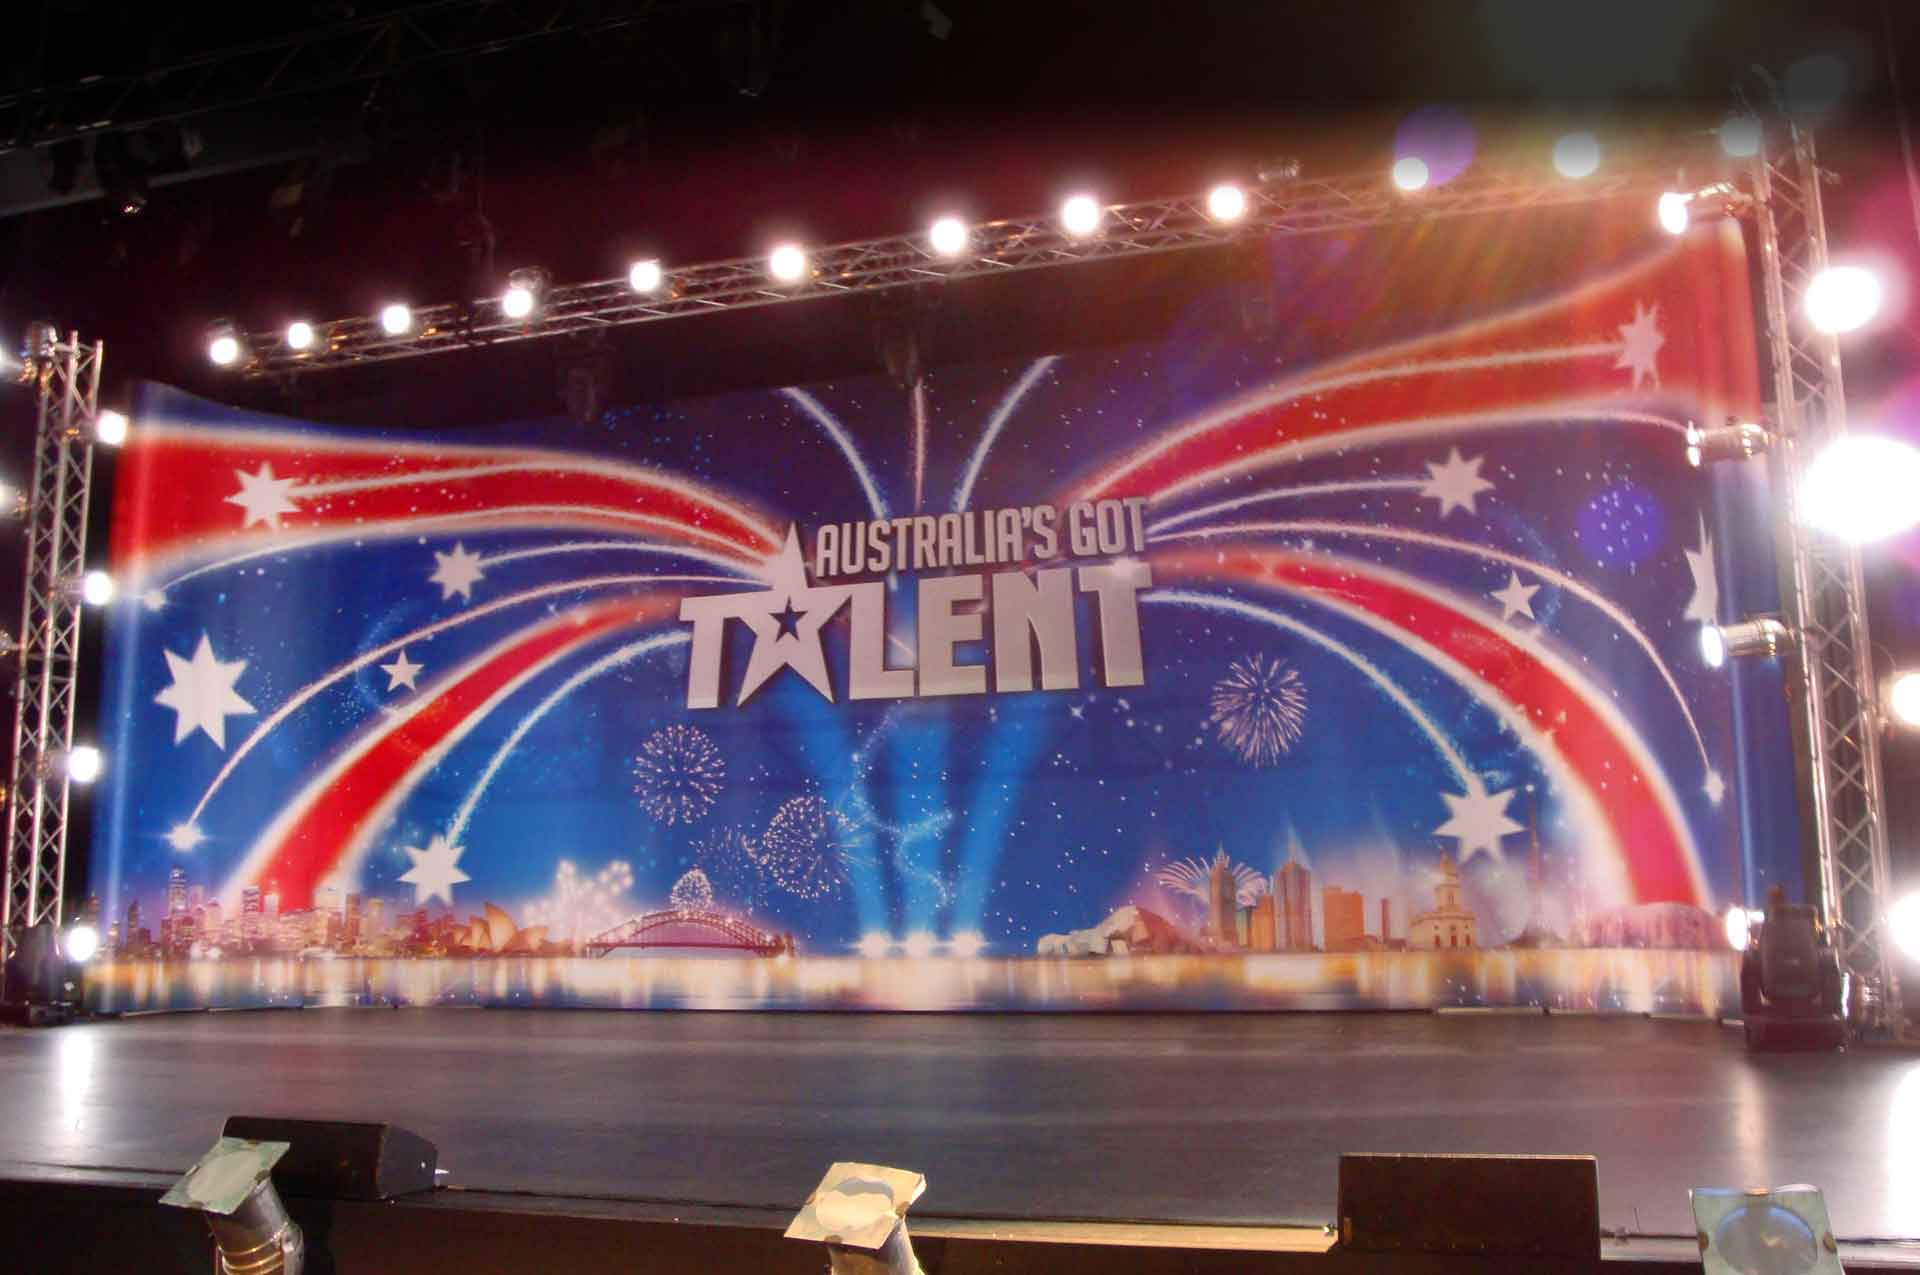 Australia's Got Talent stage set